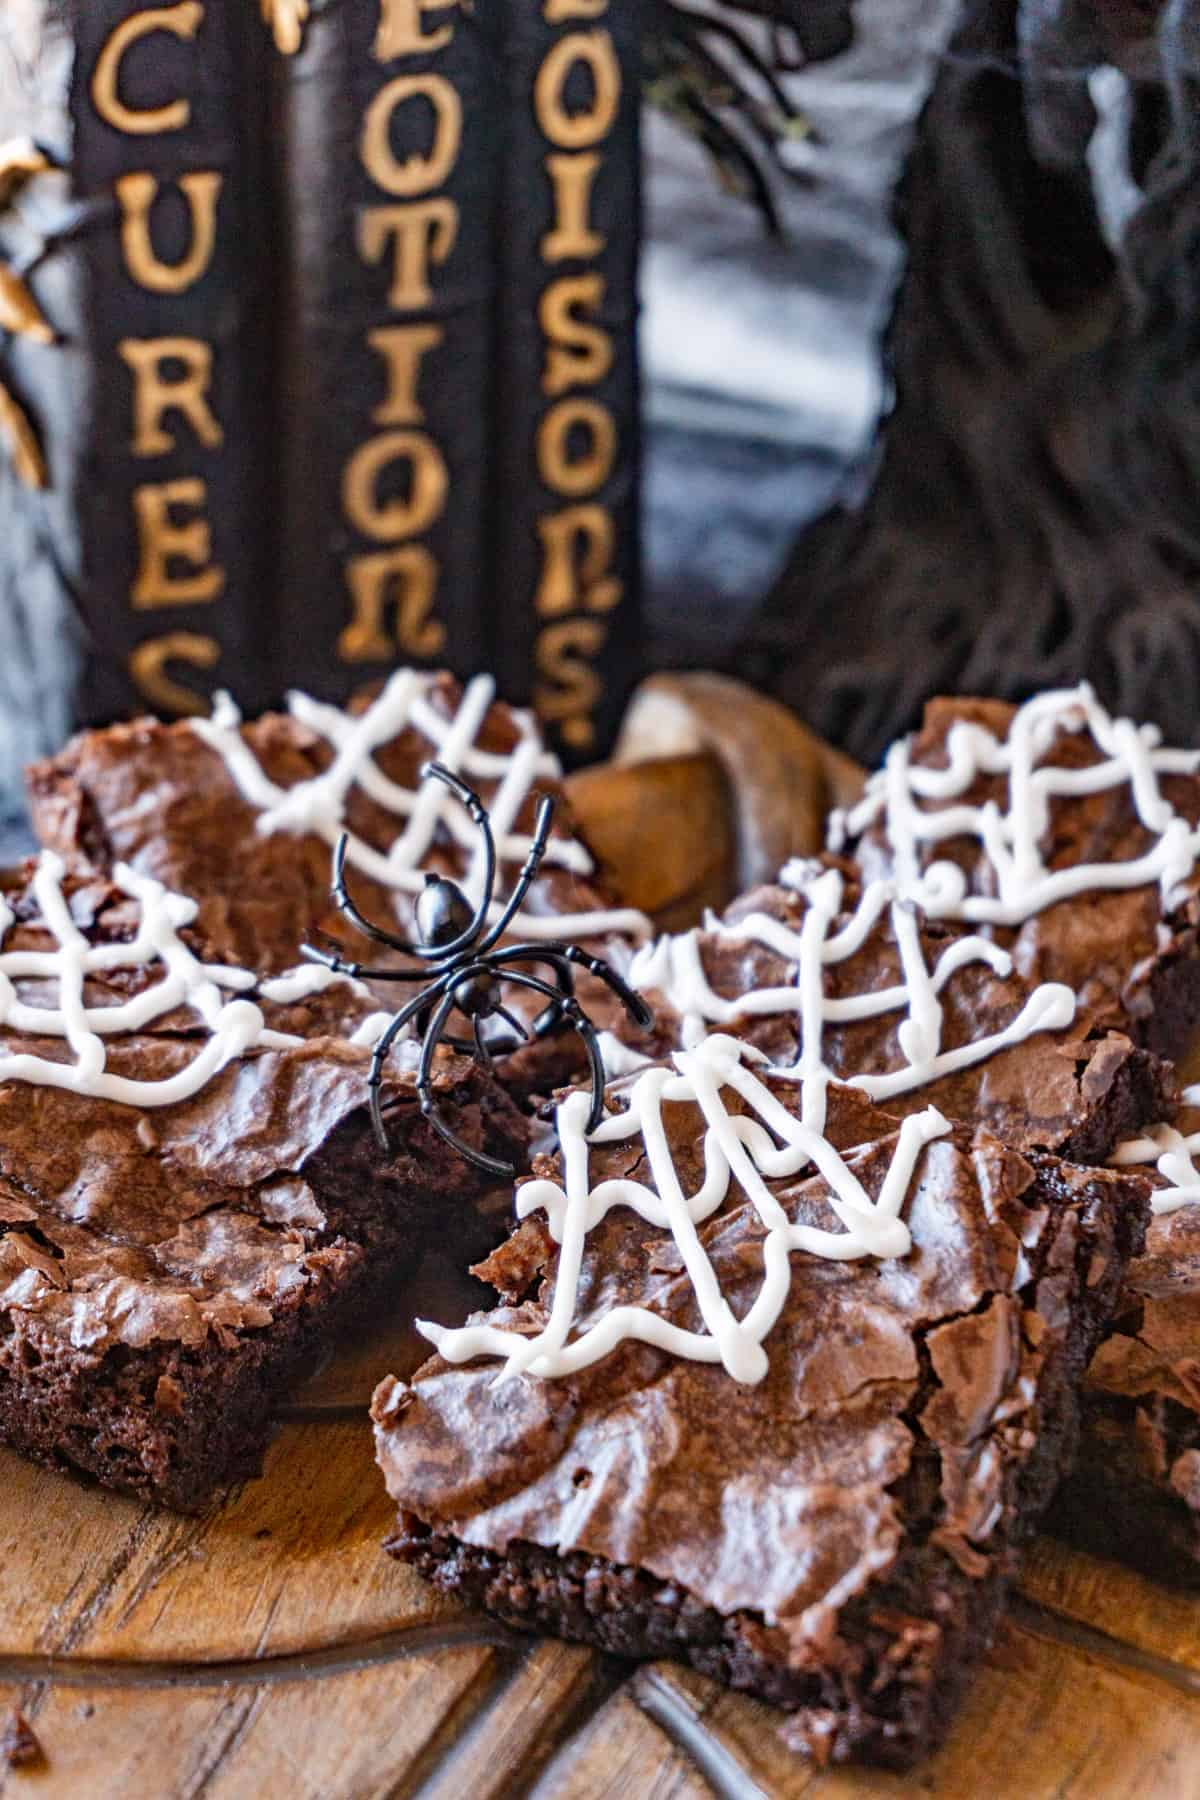 Spider web brownies on a platter